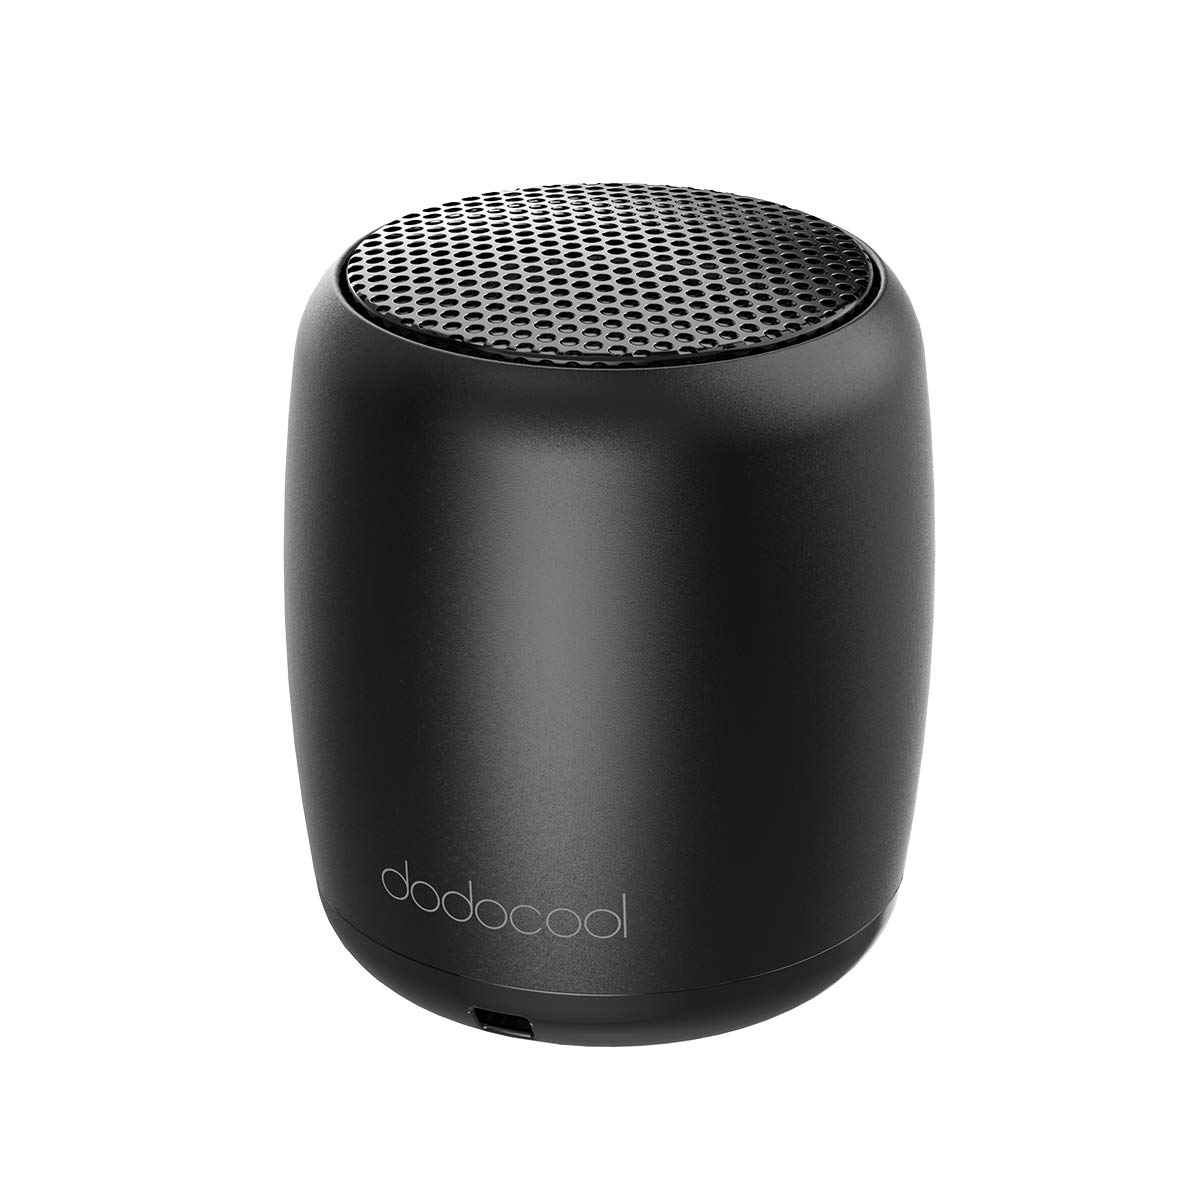 Dodocool Mini Wireless Speakers Small Portable Speaker Baby Boomer 600w Dual 8quot Subwoofer Electronicswoot Built In Mic And Selfie Remote Control Low Harmonic Distortion For Iphone Ipad Android Smartphone More Black Electronics